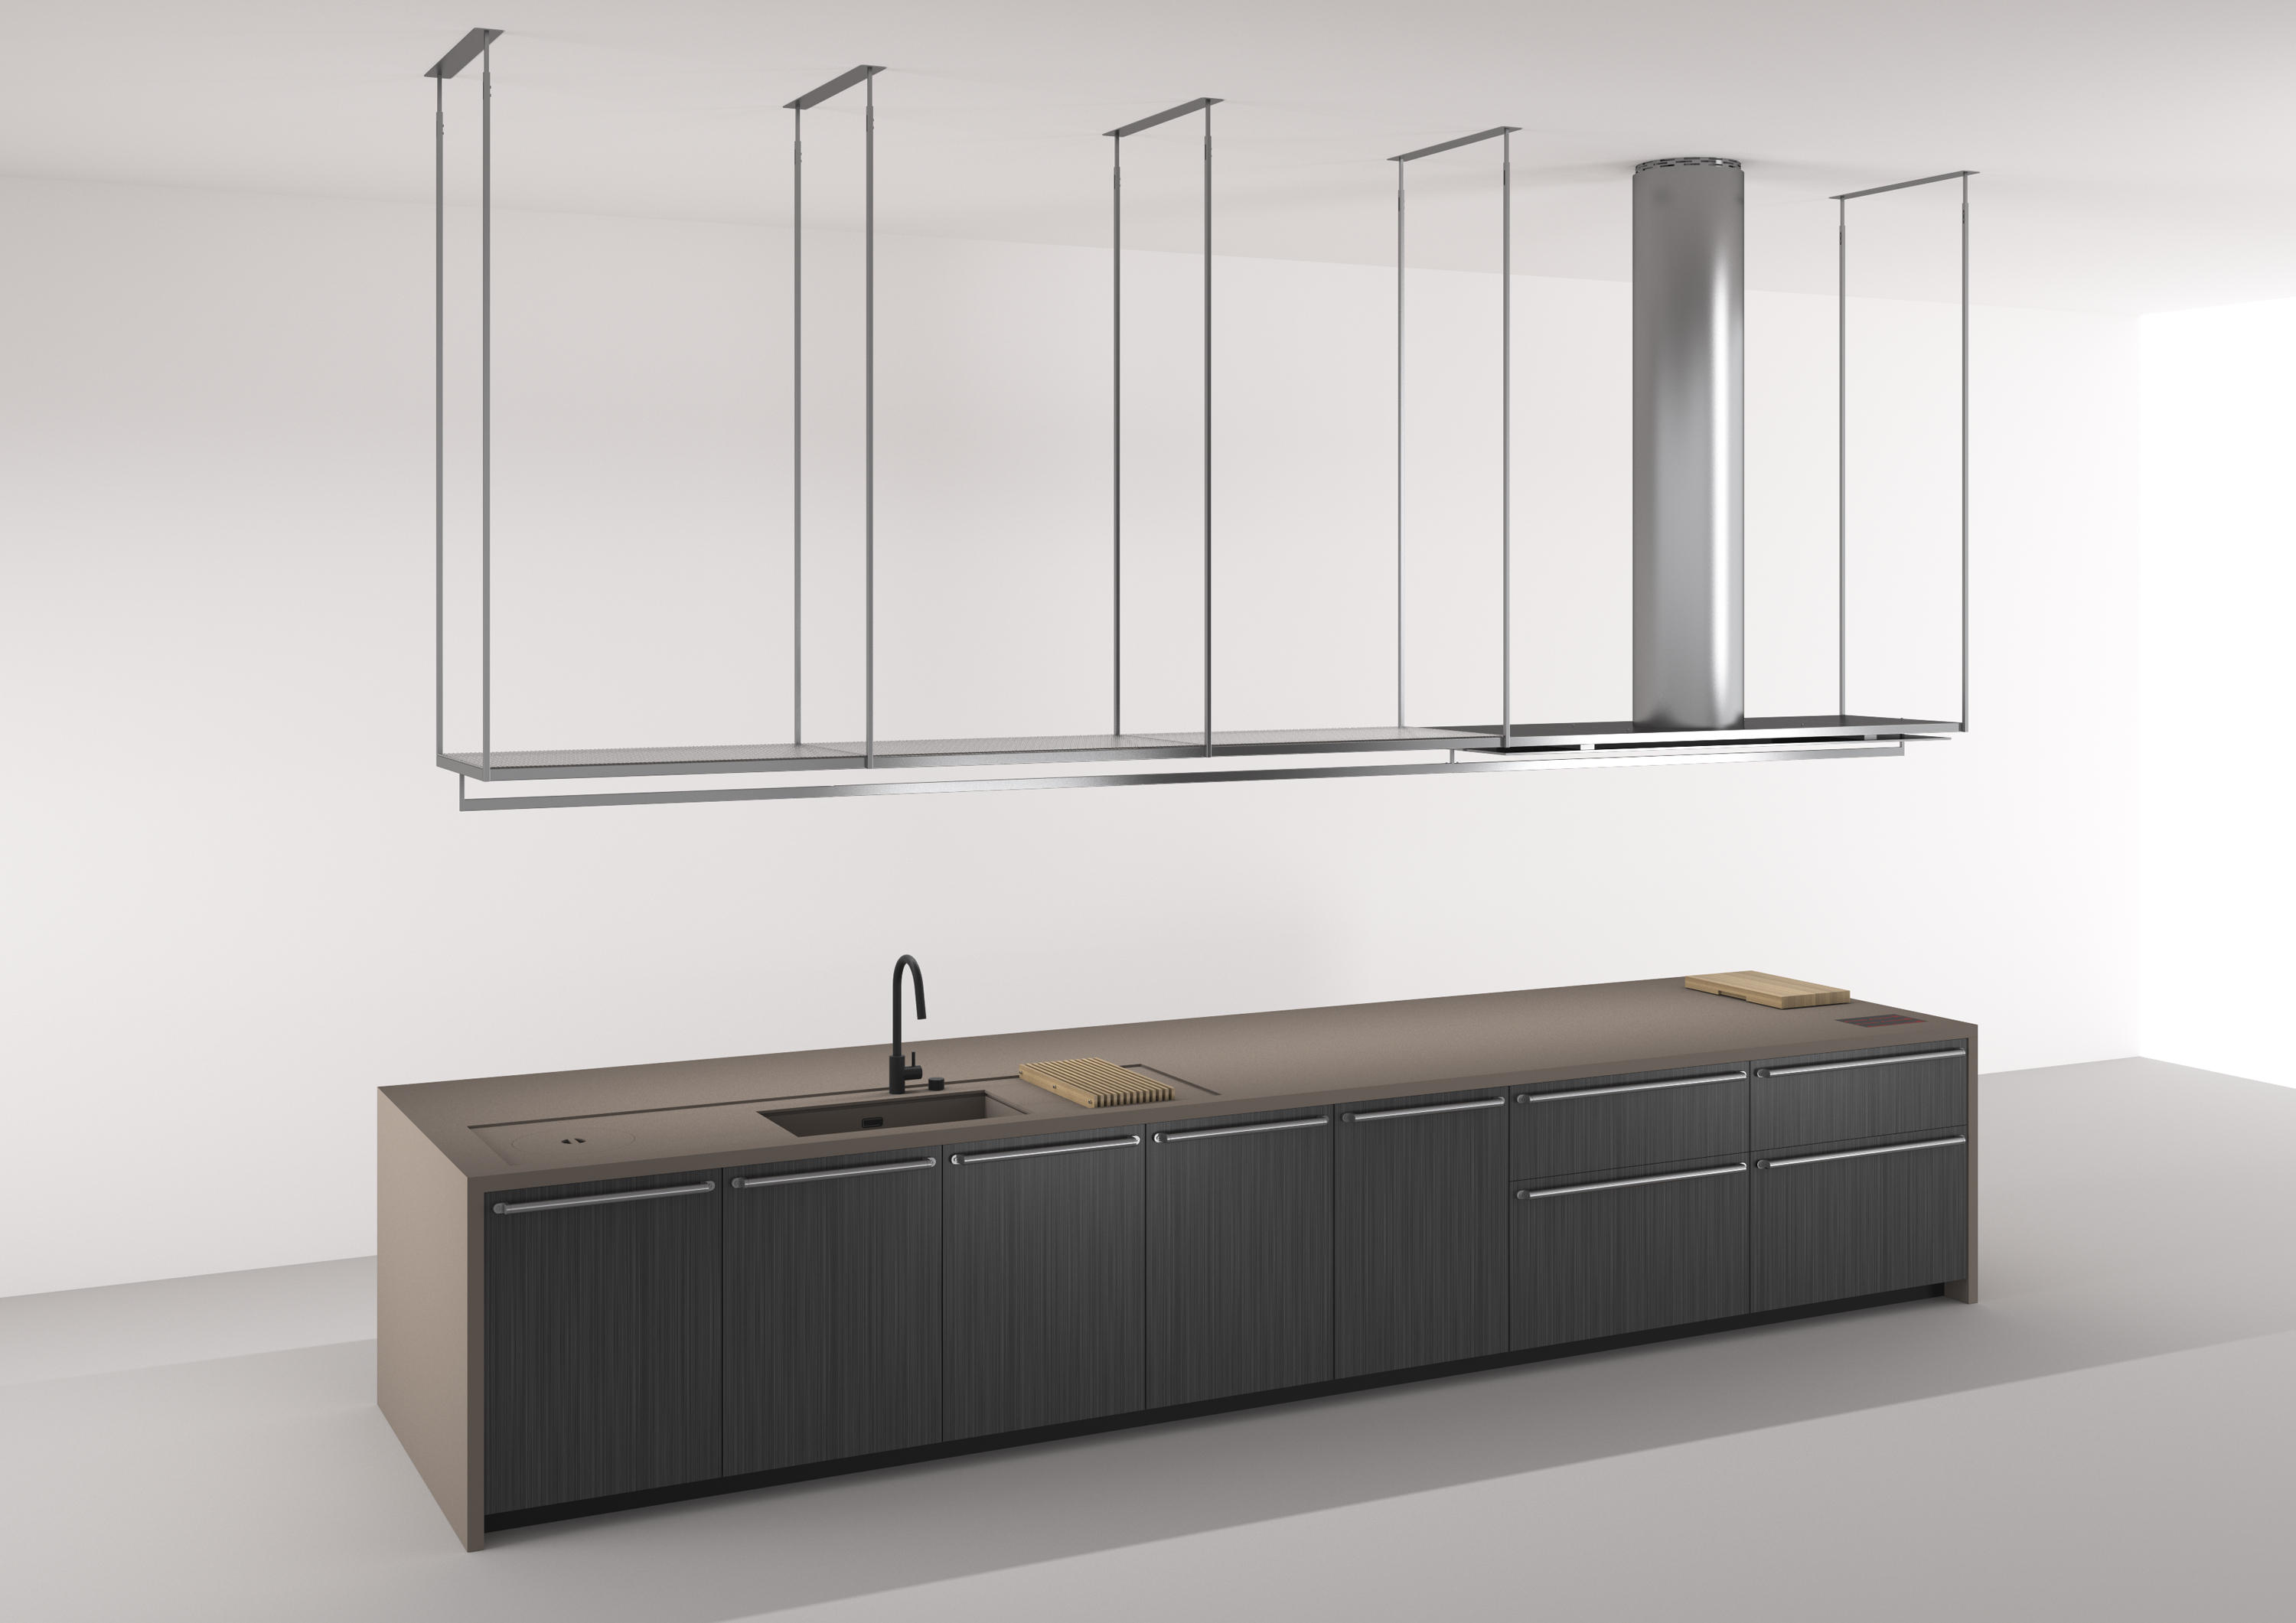 Boffi Cuisine Boffi Code Kitchen Island Kitchens From Boffi Architonic